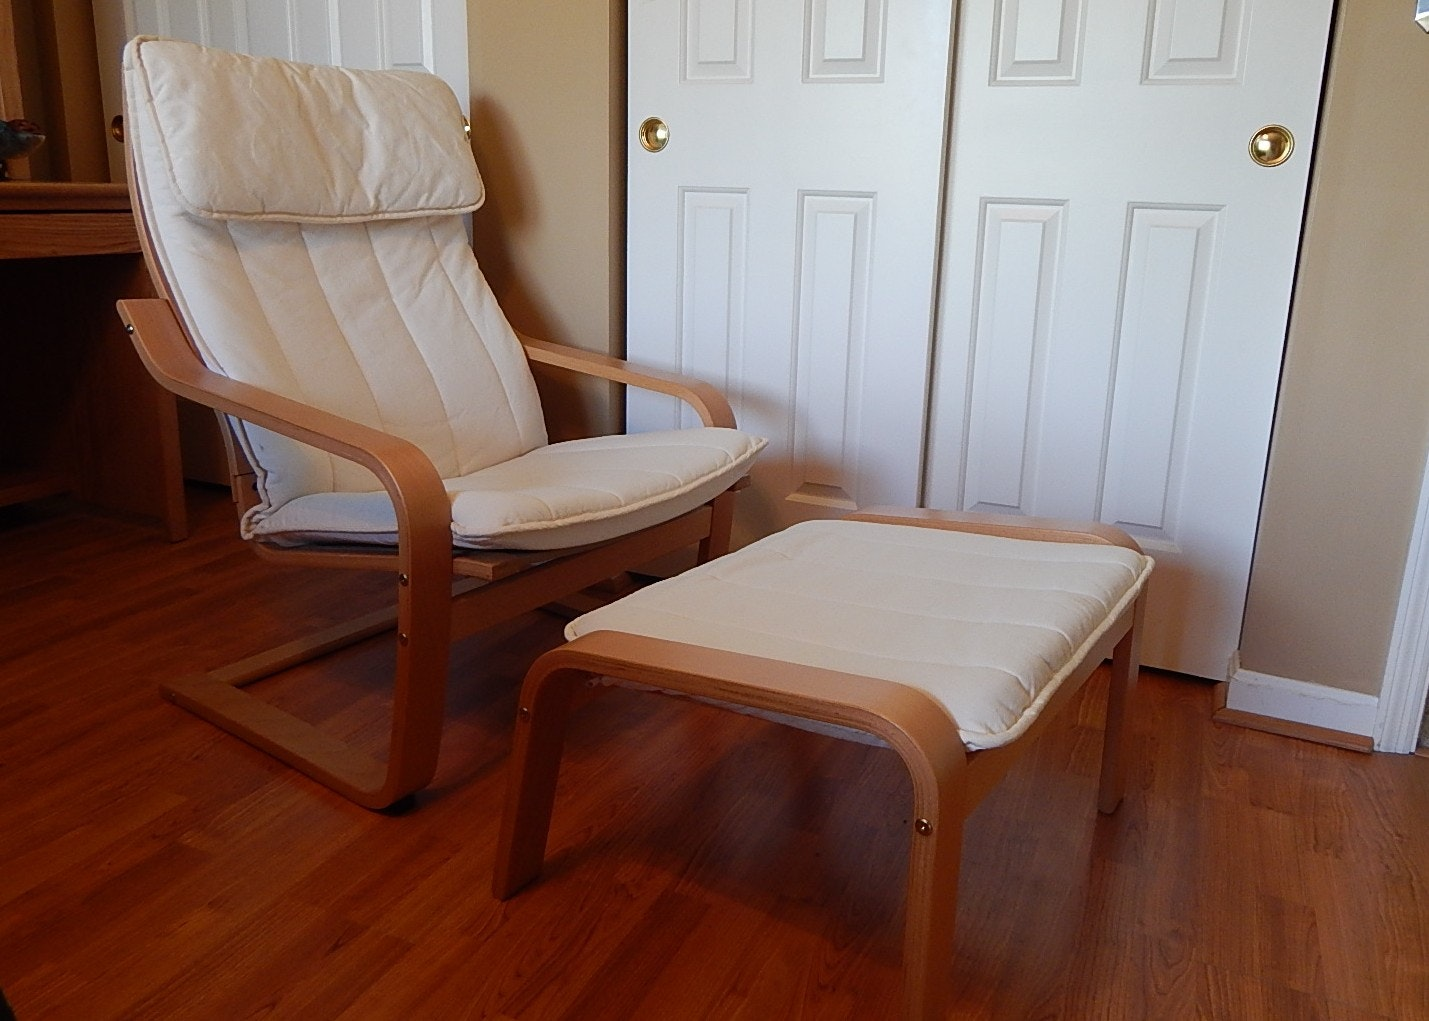 Ikea Poang Chair And Footstool ...